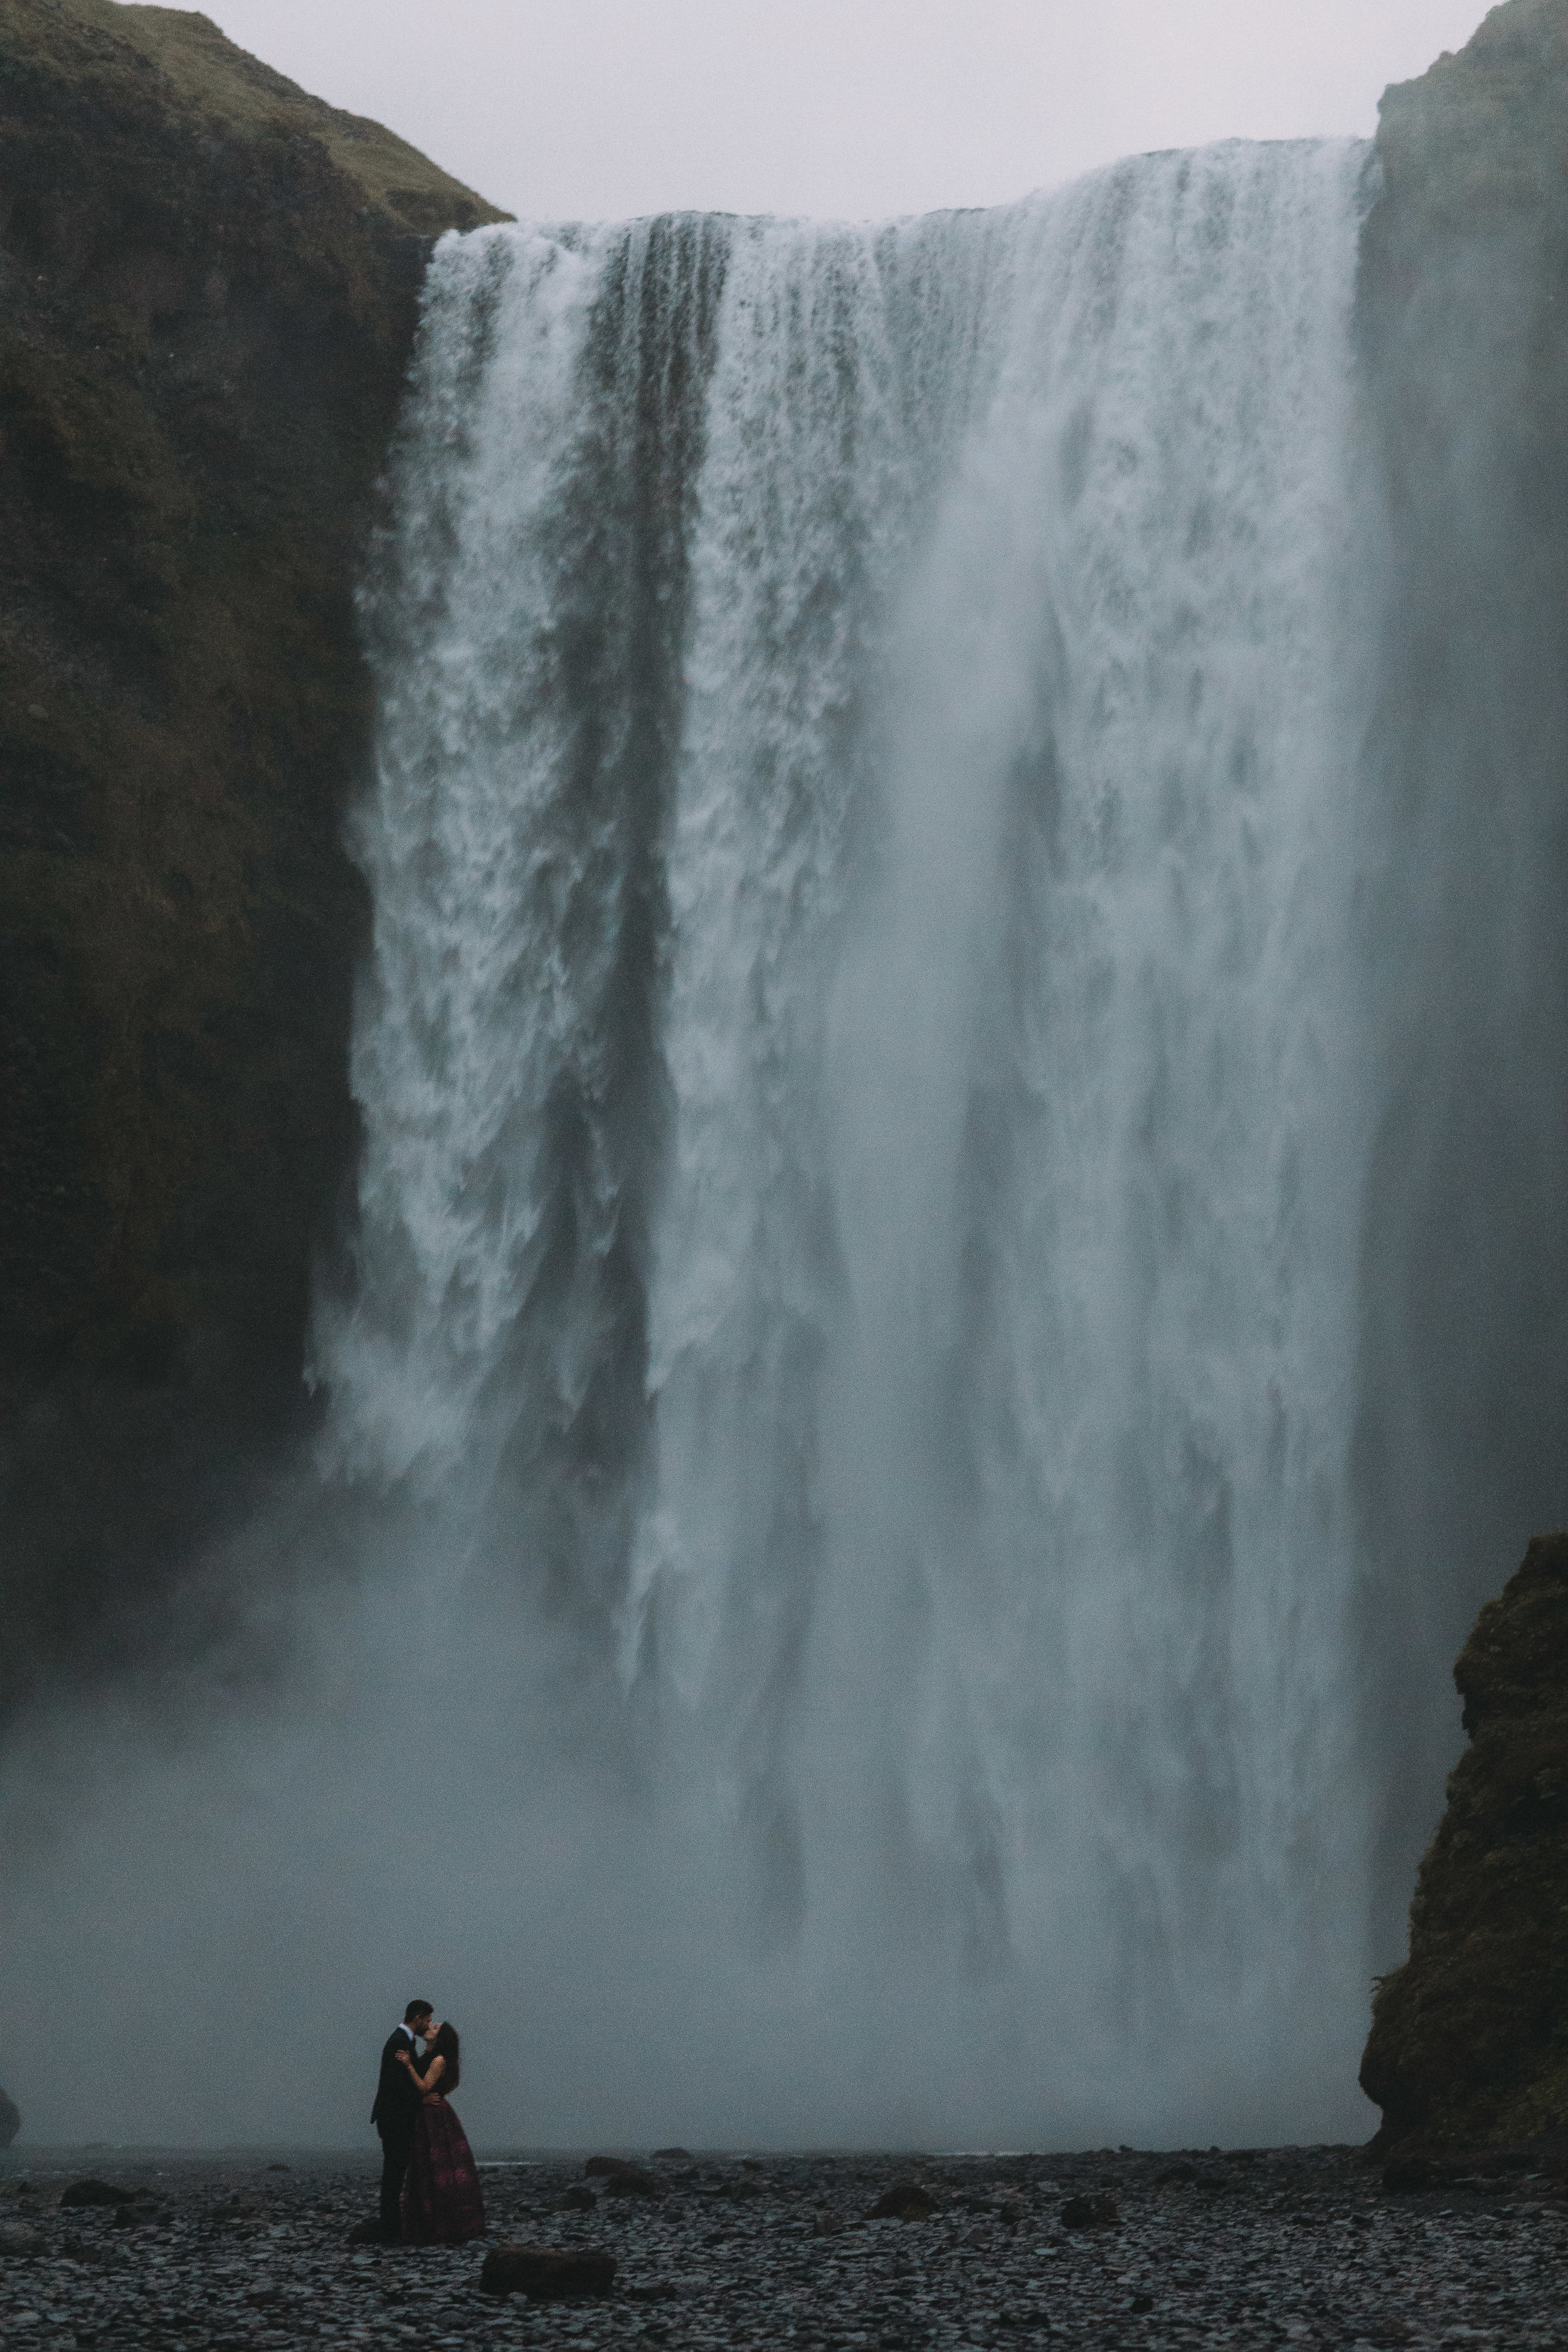 Iceland elopement photographer- Iceland wedding pictures | Skógafoss elopement pictures photographer- Iceland wedding pictures | Skógafoss elopement pictures